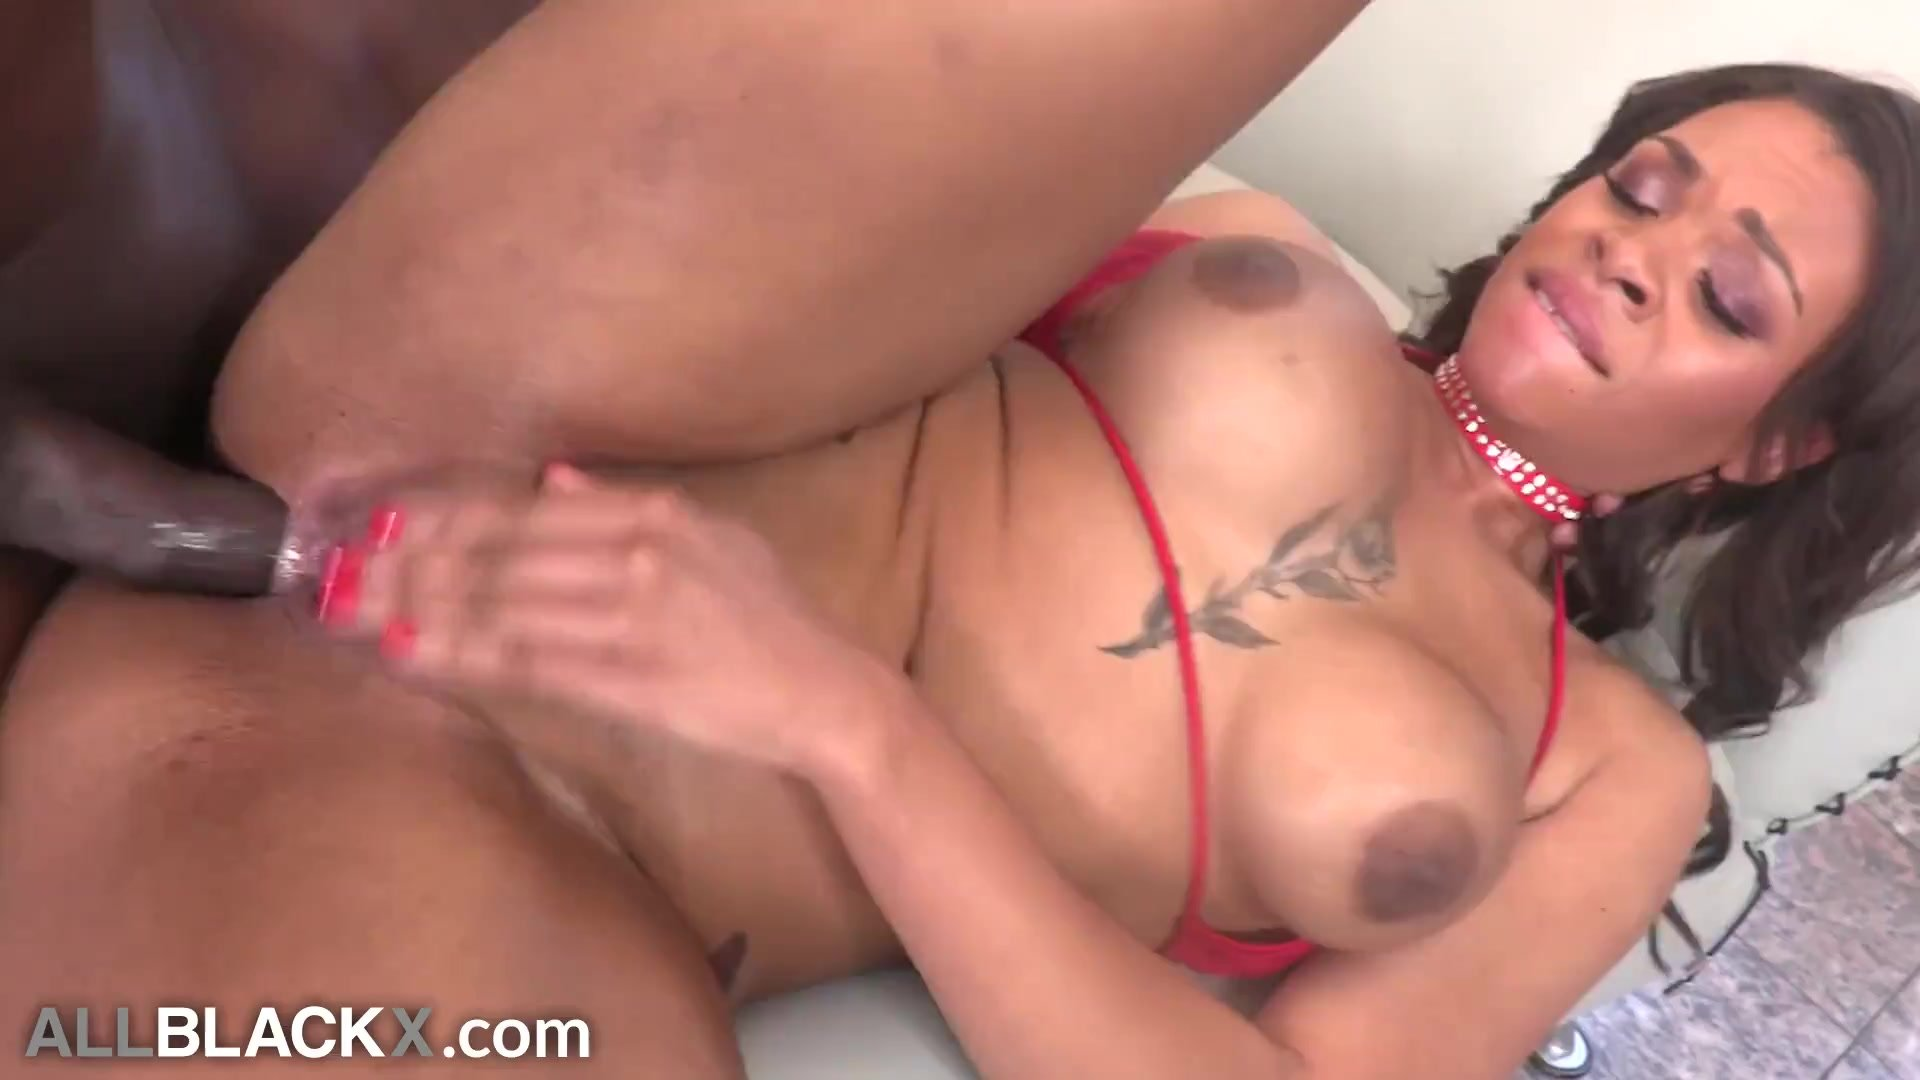 AllBlackX - First Time Anal For Thick, Twerking Booty